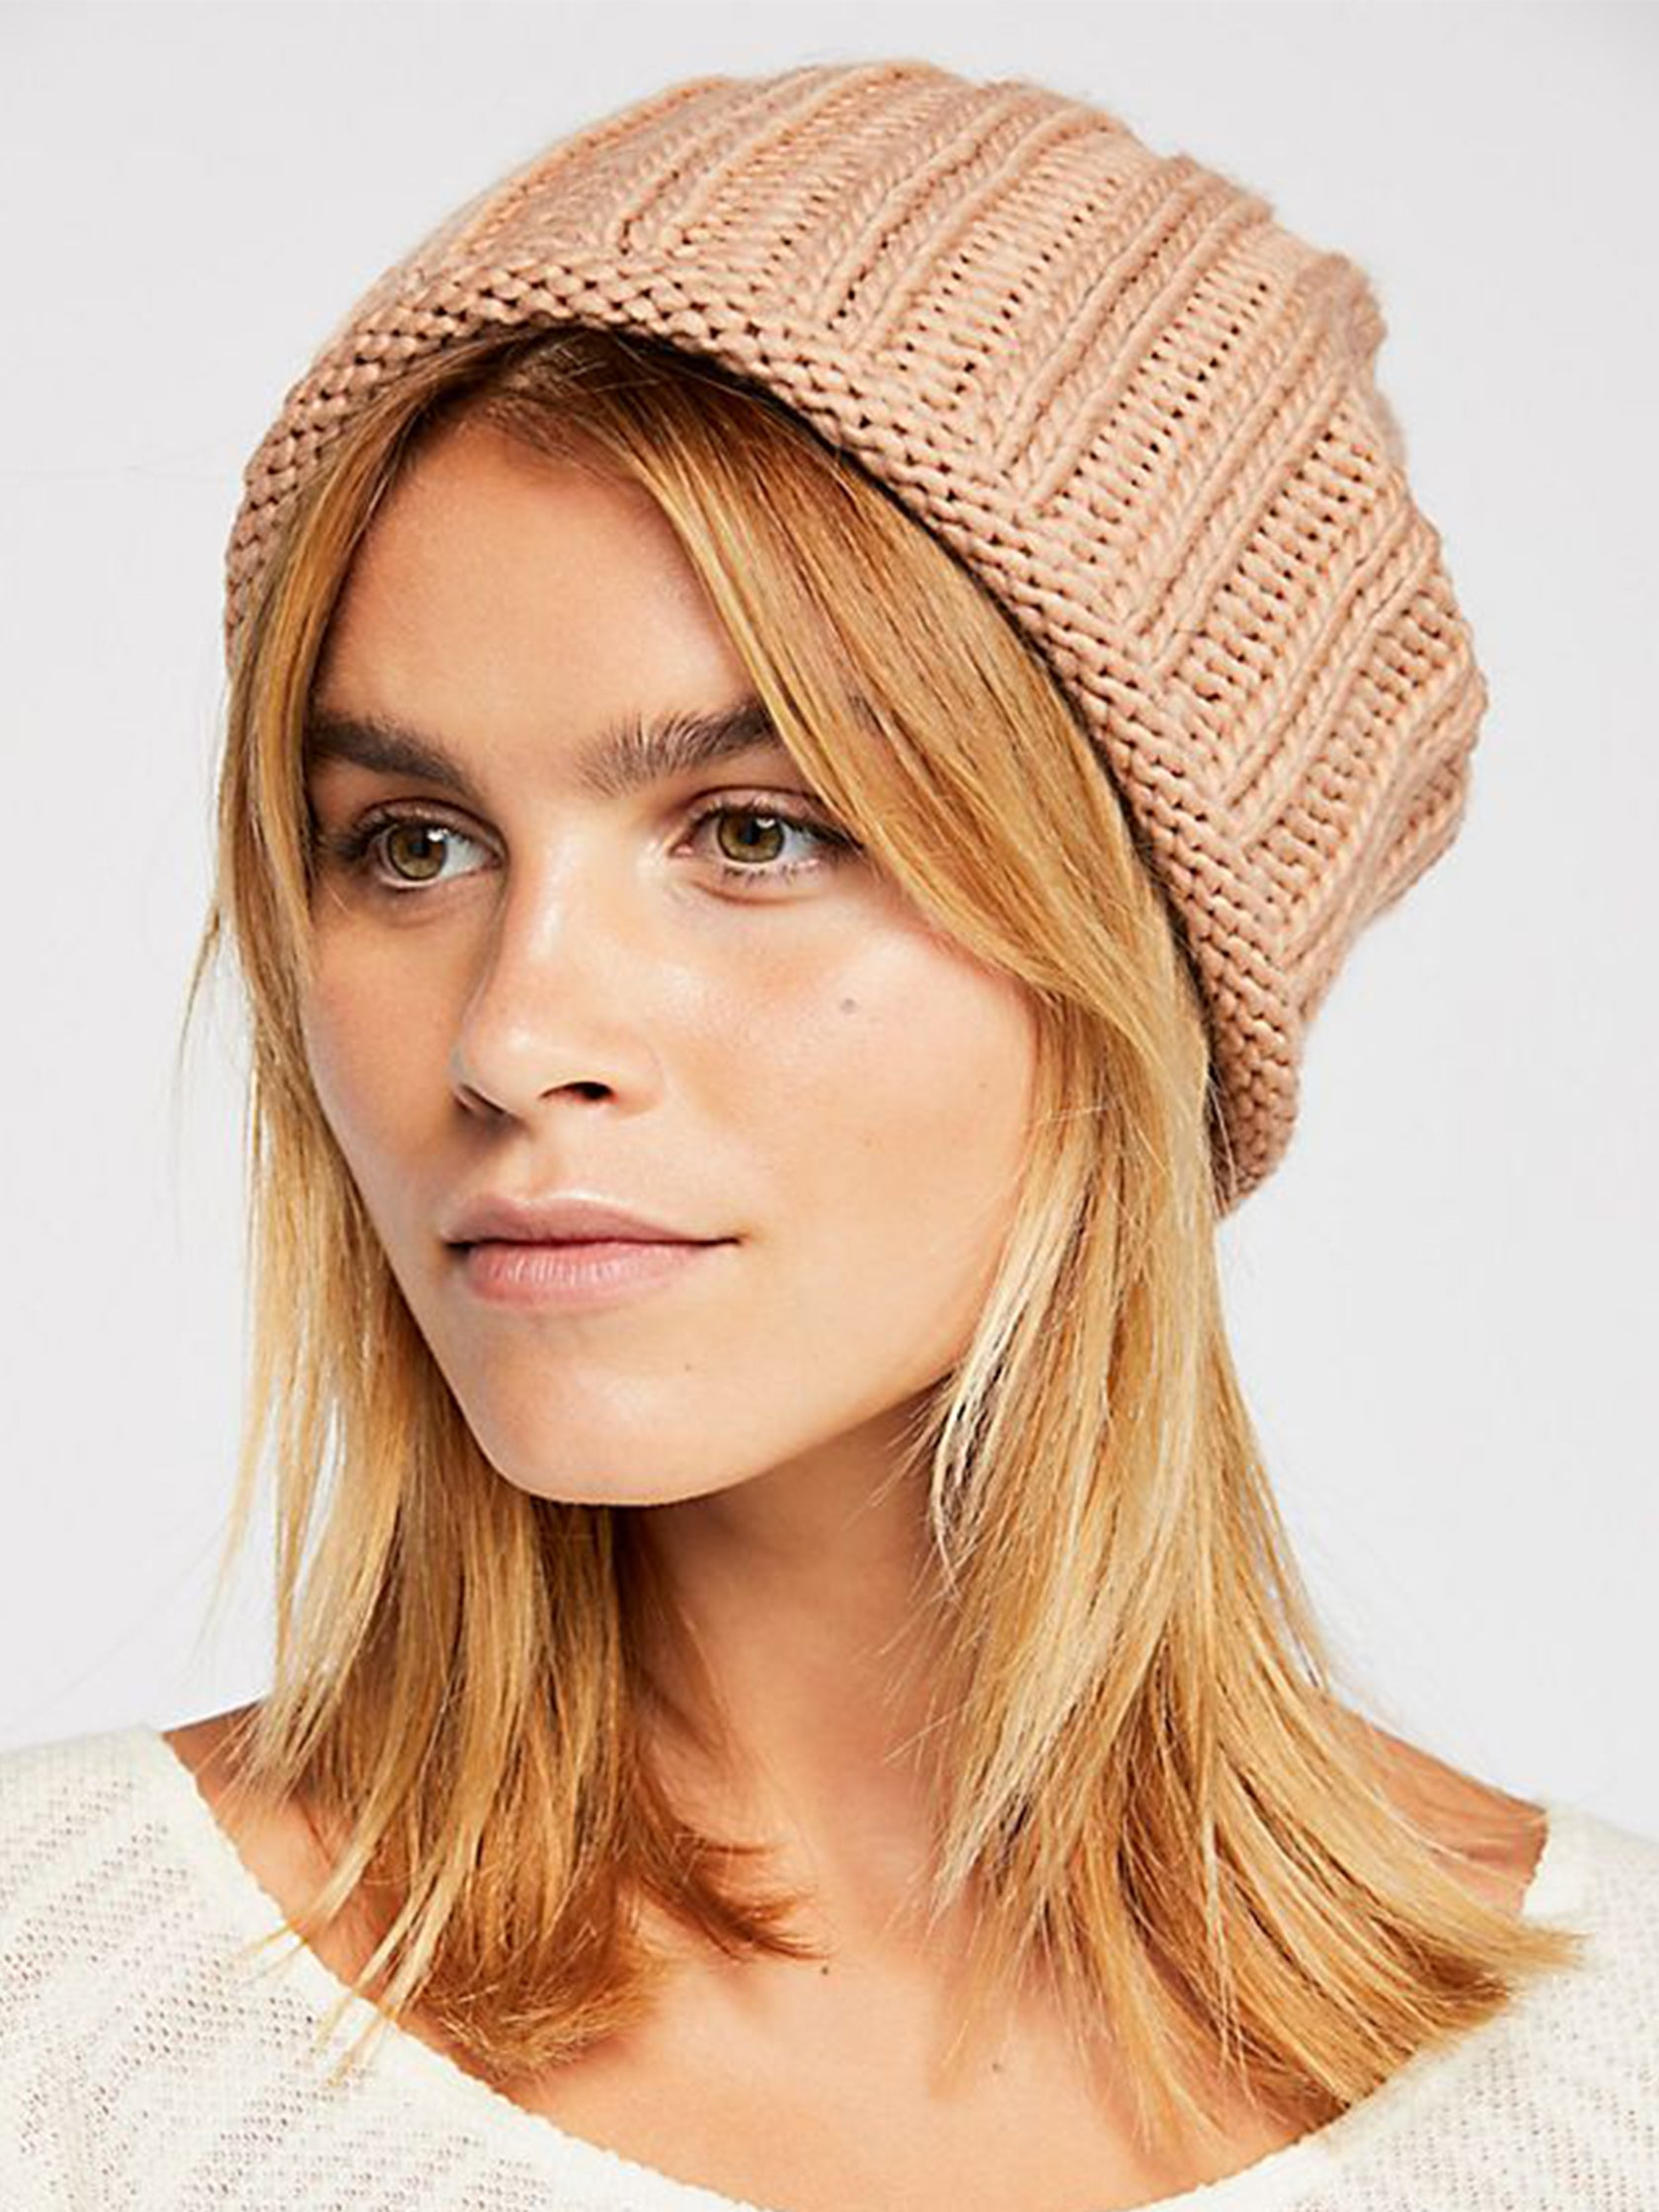 4d32cfd30c9ef Women outfit in a hat rental from Free People called Rory Rib Knit Beanie